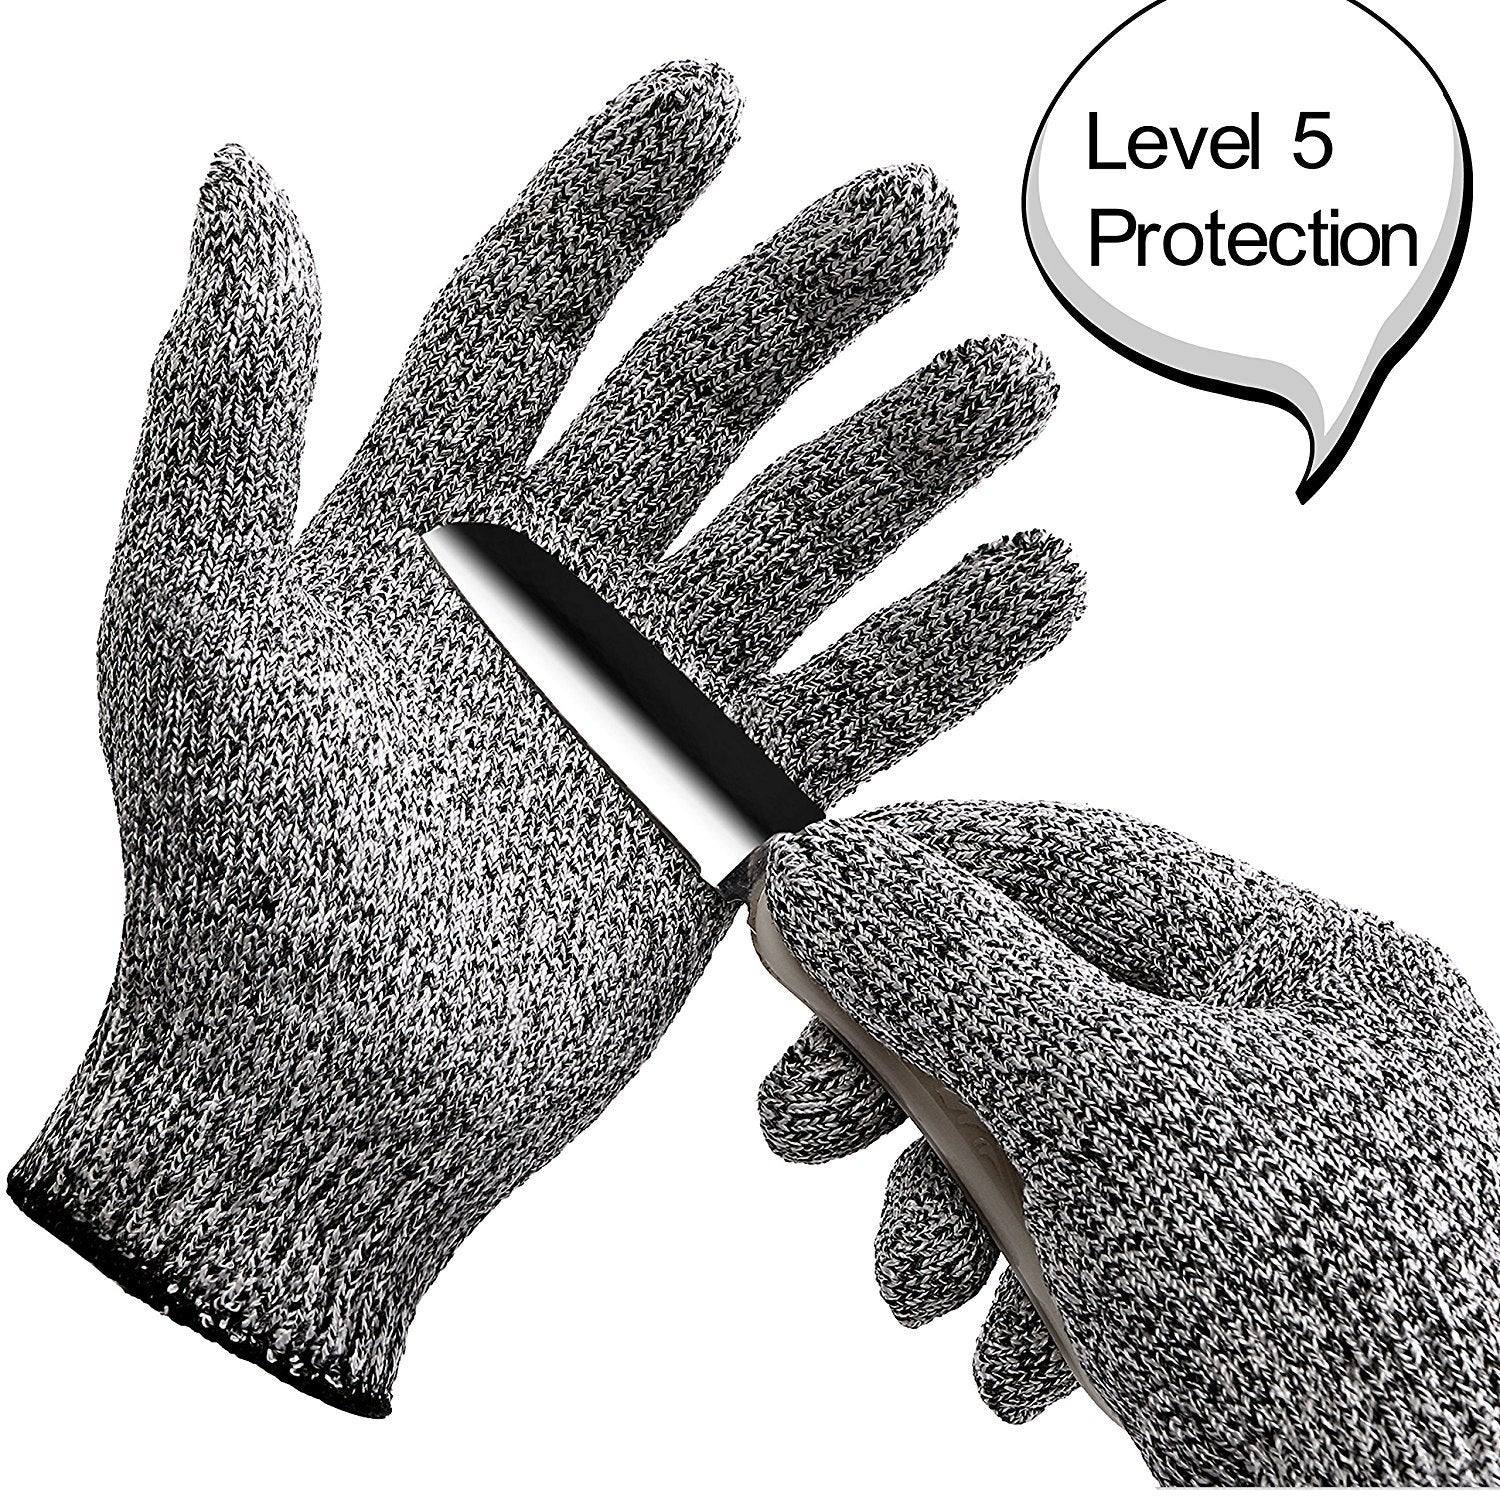 Cut Resistant Gloves Level 5 Protection Food Grade EN388 Certified, Safty  Gloves for Hand Protection and Yard-work, Kitchen Glove for Cutting and ...